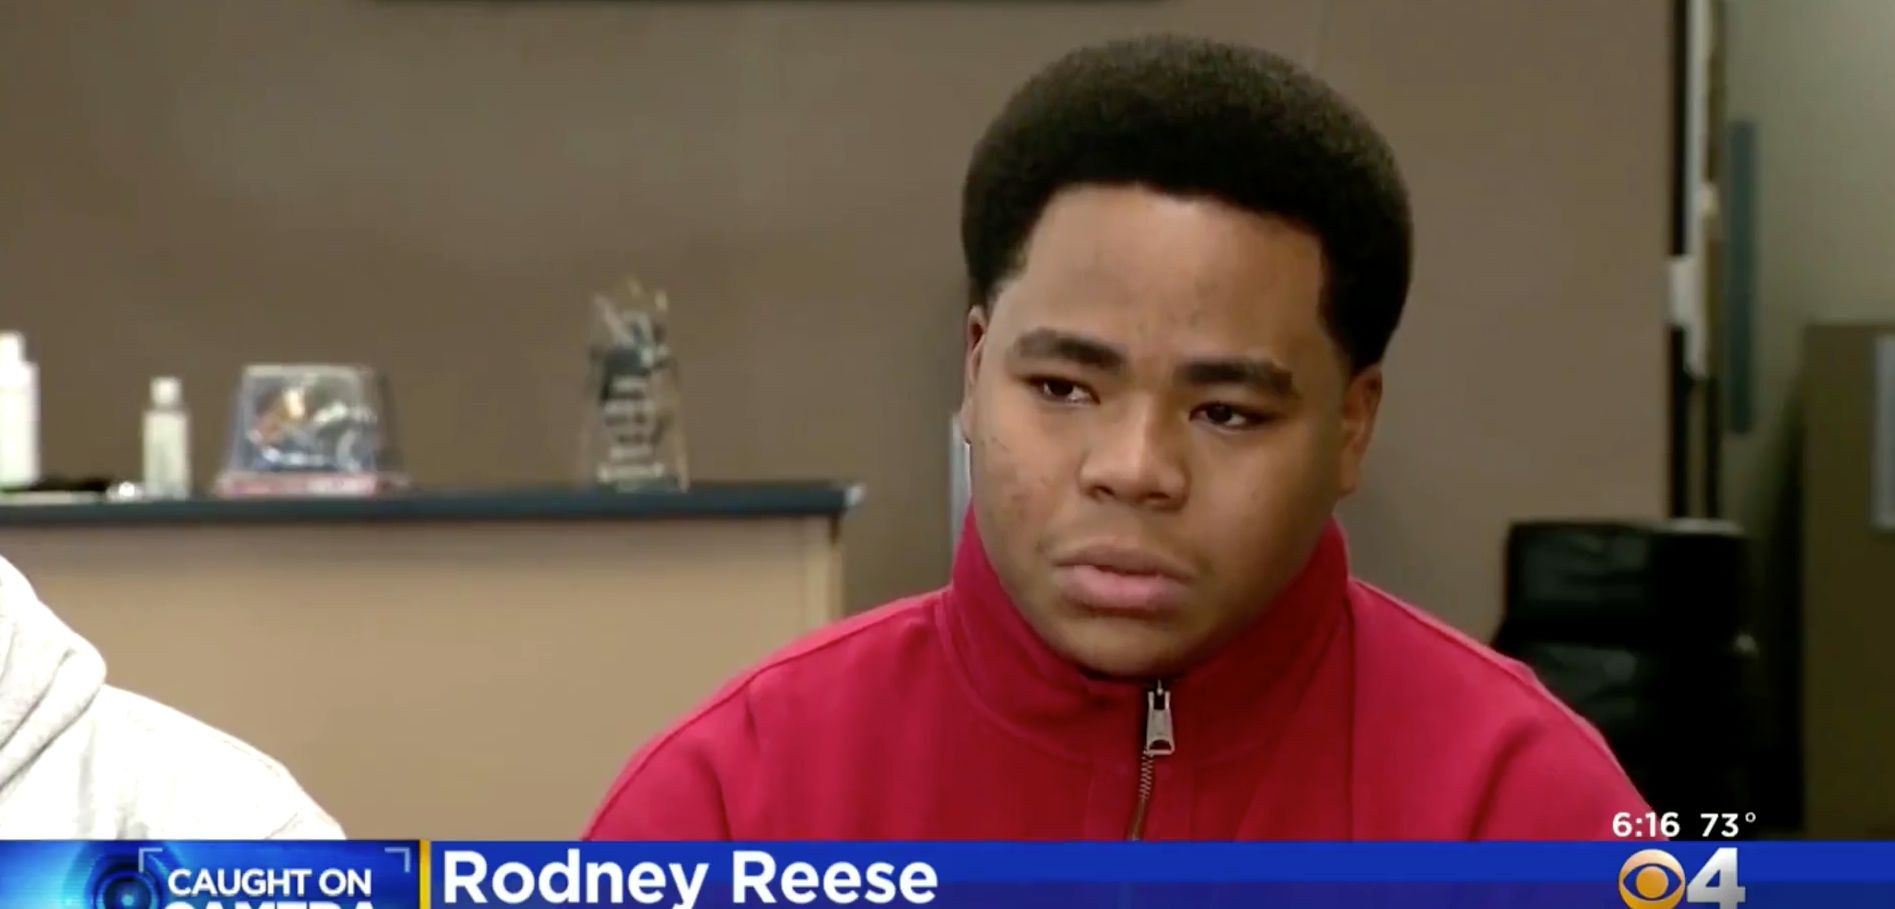 Rodney Reese, 18, was arrested after he was seen walking home during a snowstorm.He believes the call that brought offi